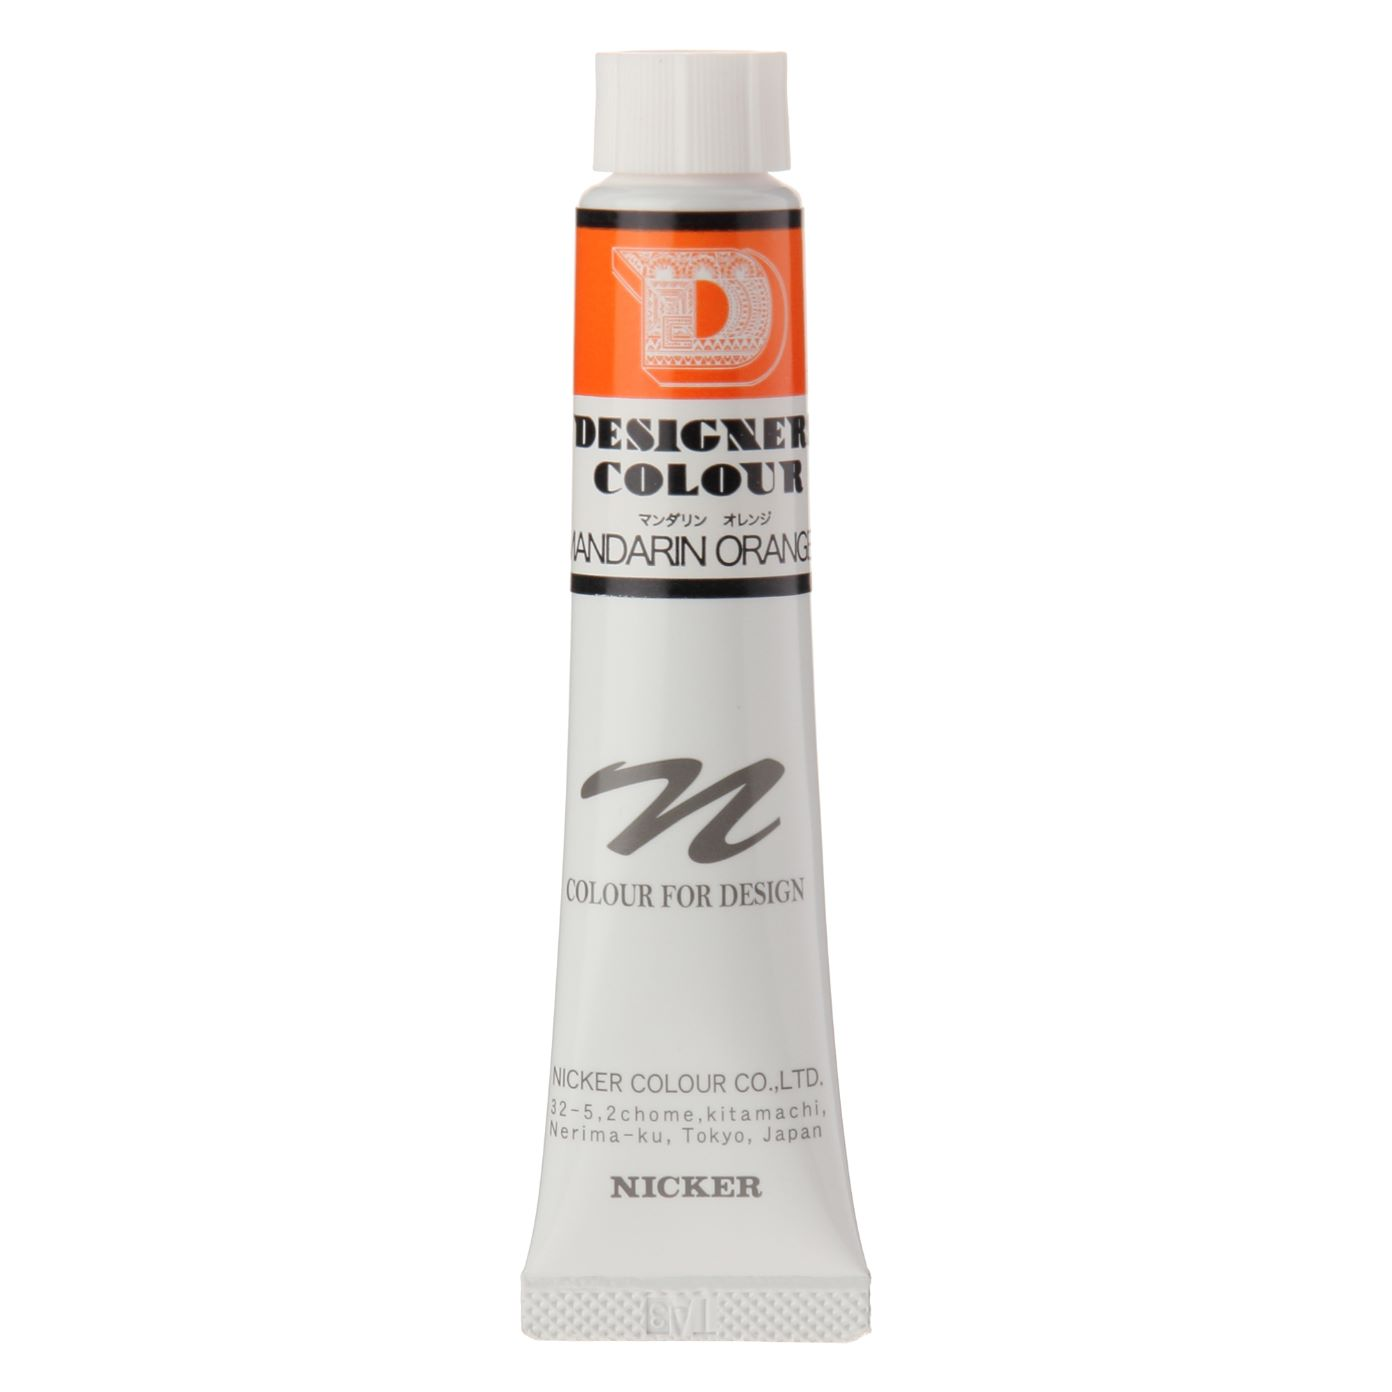 DESIGNERS COLOUR 20ml 509 MANDARIN ORANGE